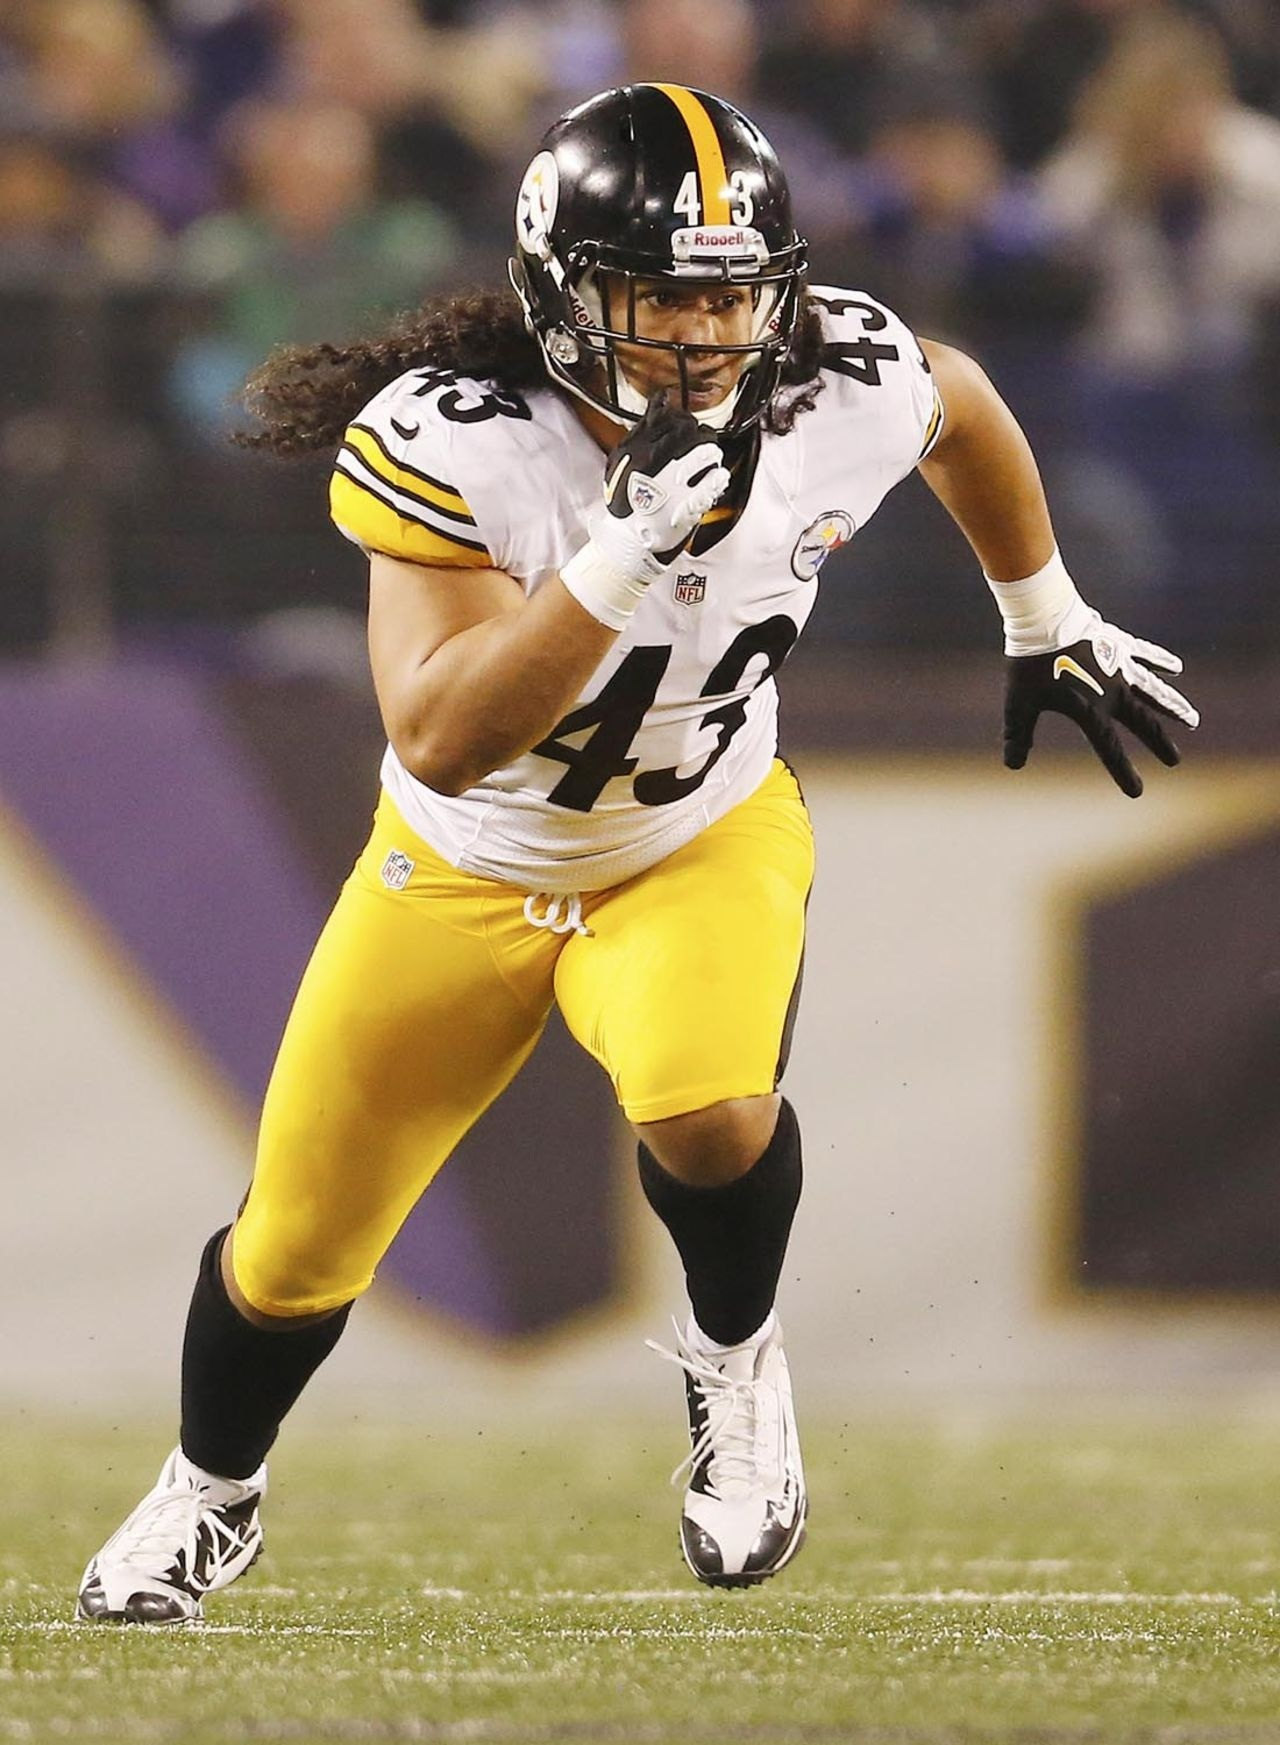 Pittsburgh Steelers Iphone Wallpaper Troy Polamalu Wallpapers High Quality Download Free